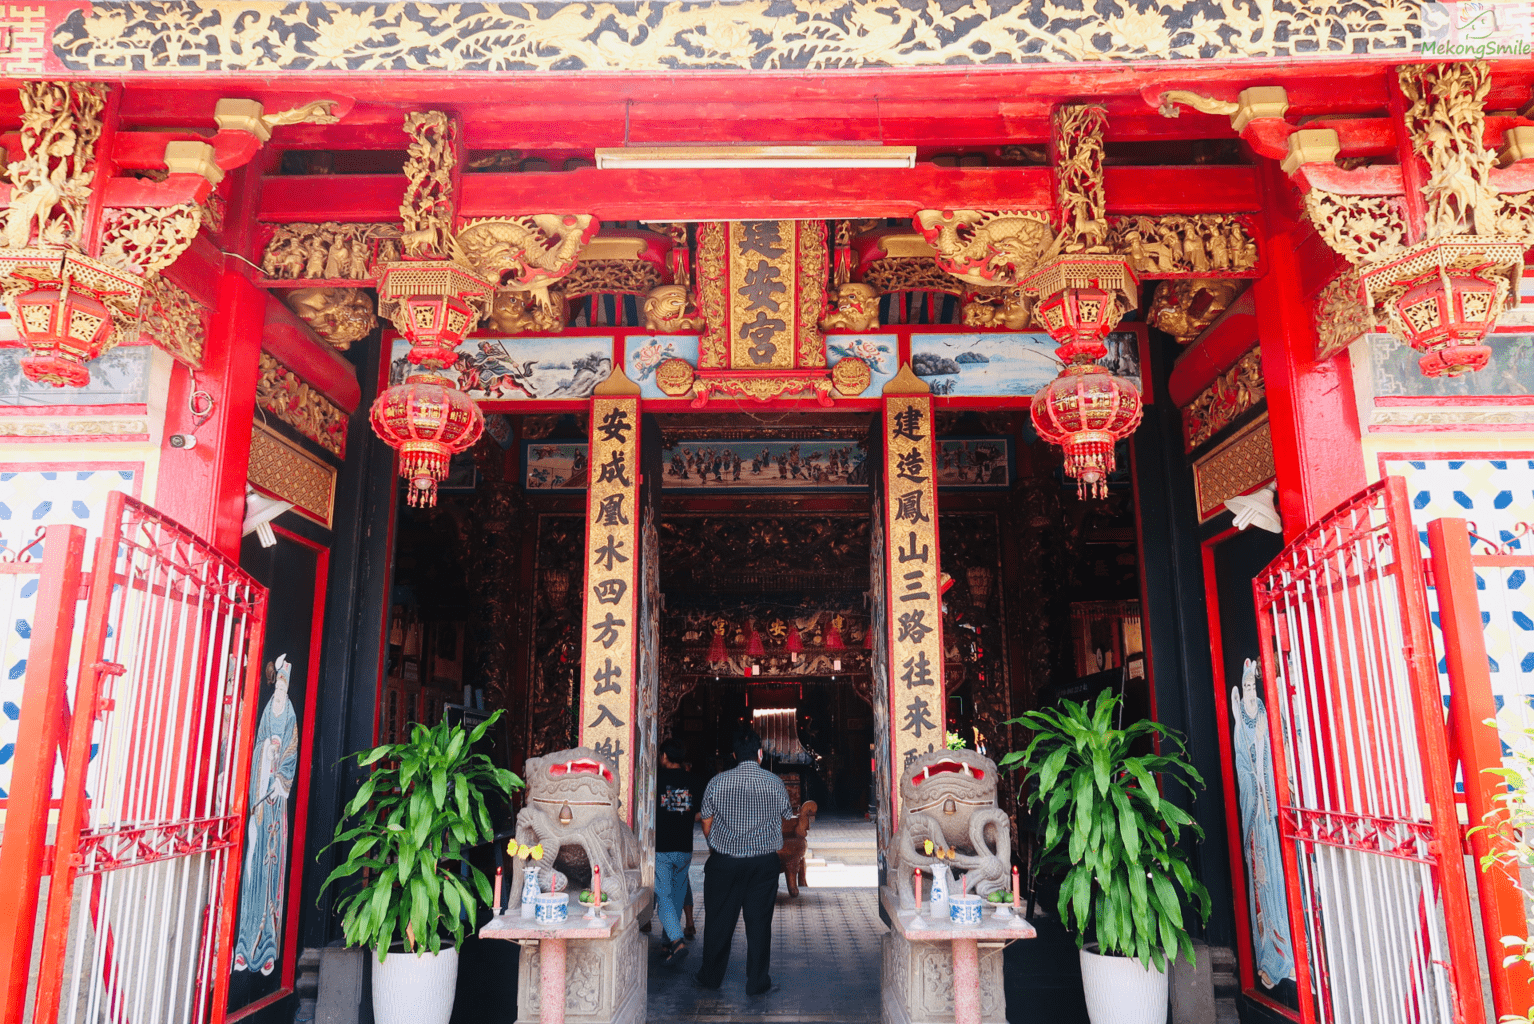 Inside solemnly beautiful Chinese temple